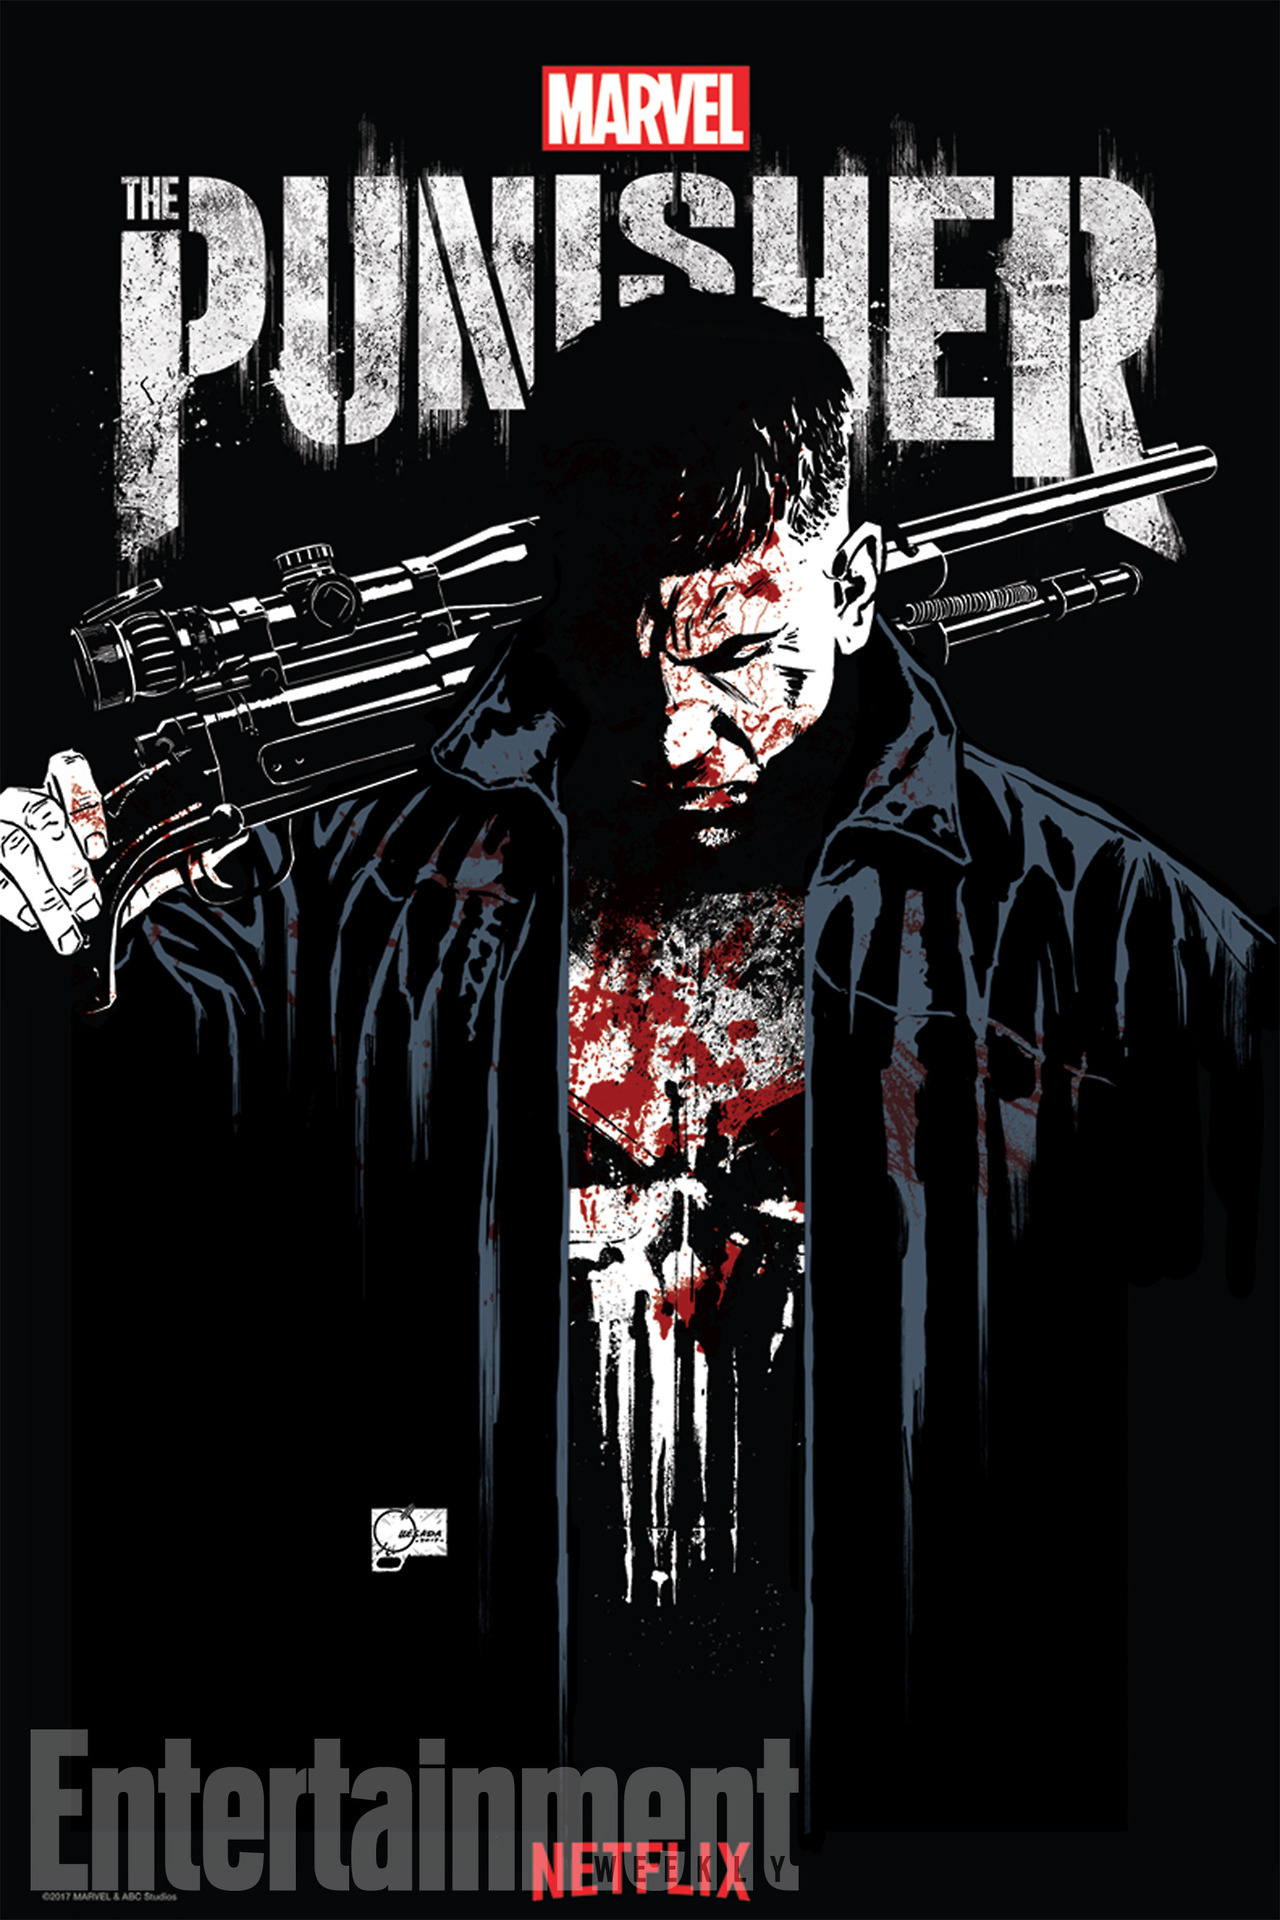 The Punisher episode list